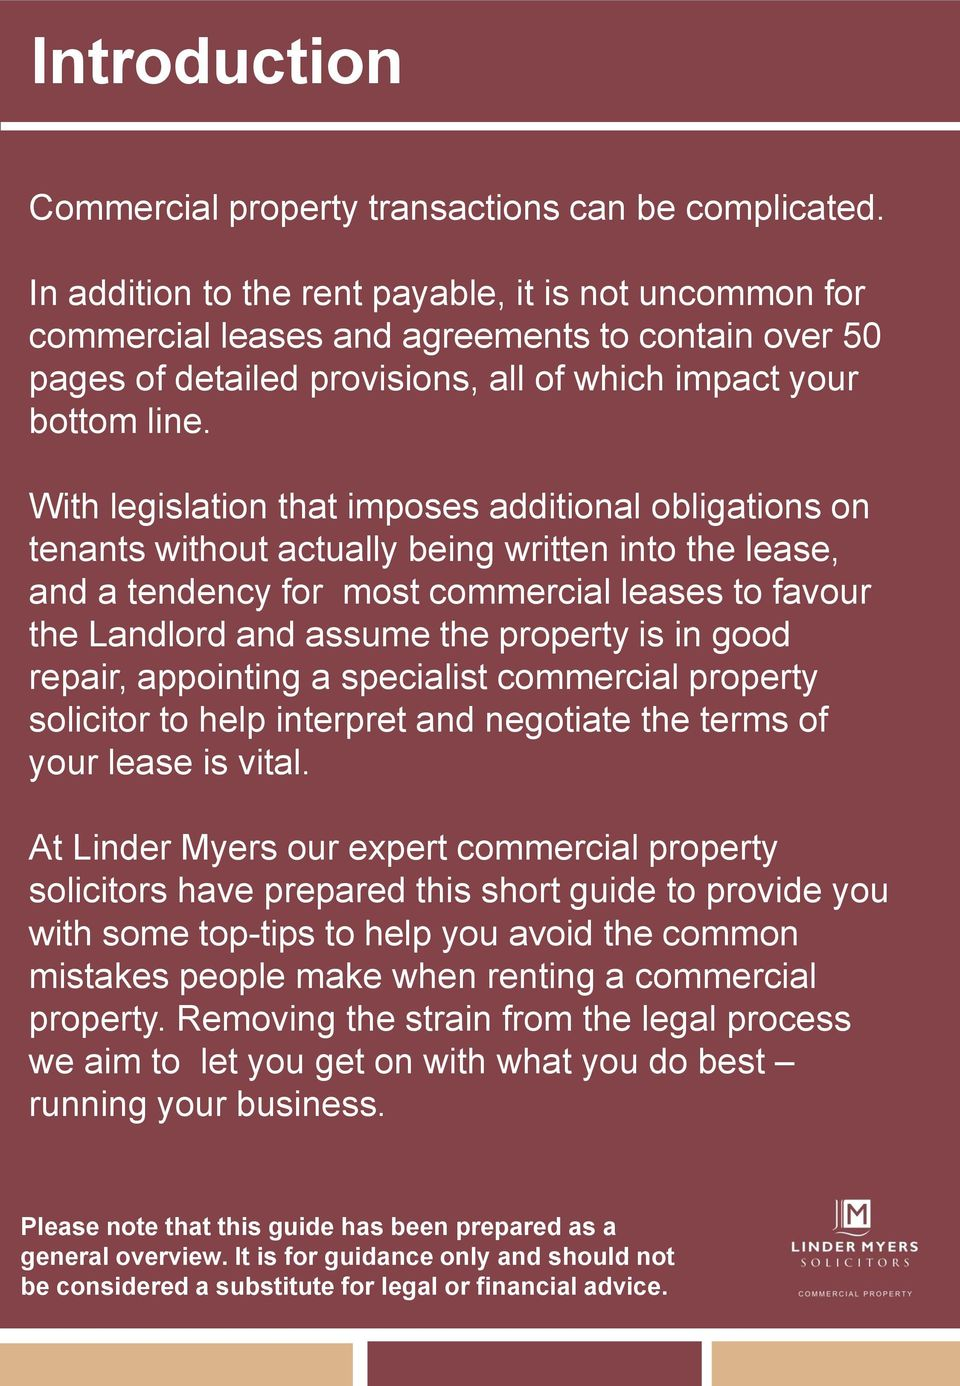 With legislation that imposes additional obligations on tenants without actually being written into the lease, and a tendency for most commercial leases to favour the Landlord and assume the property